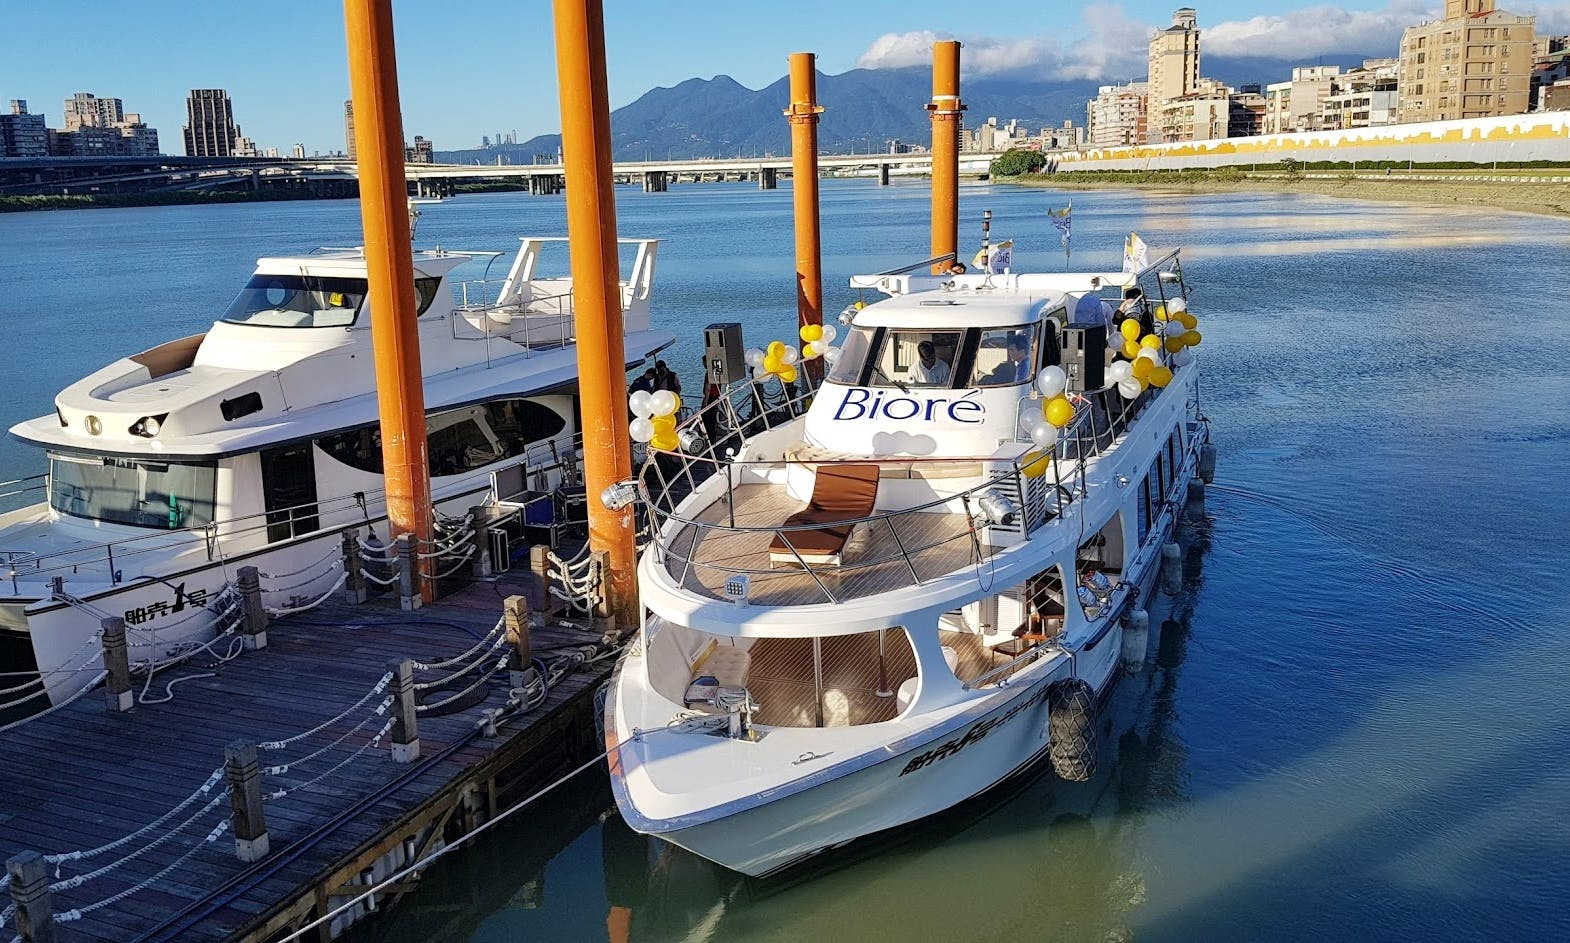 Hire a 55' Power Mega Yacht for Luxury Party in Datong District